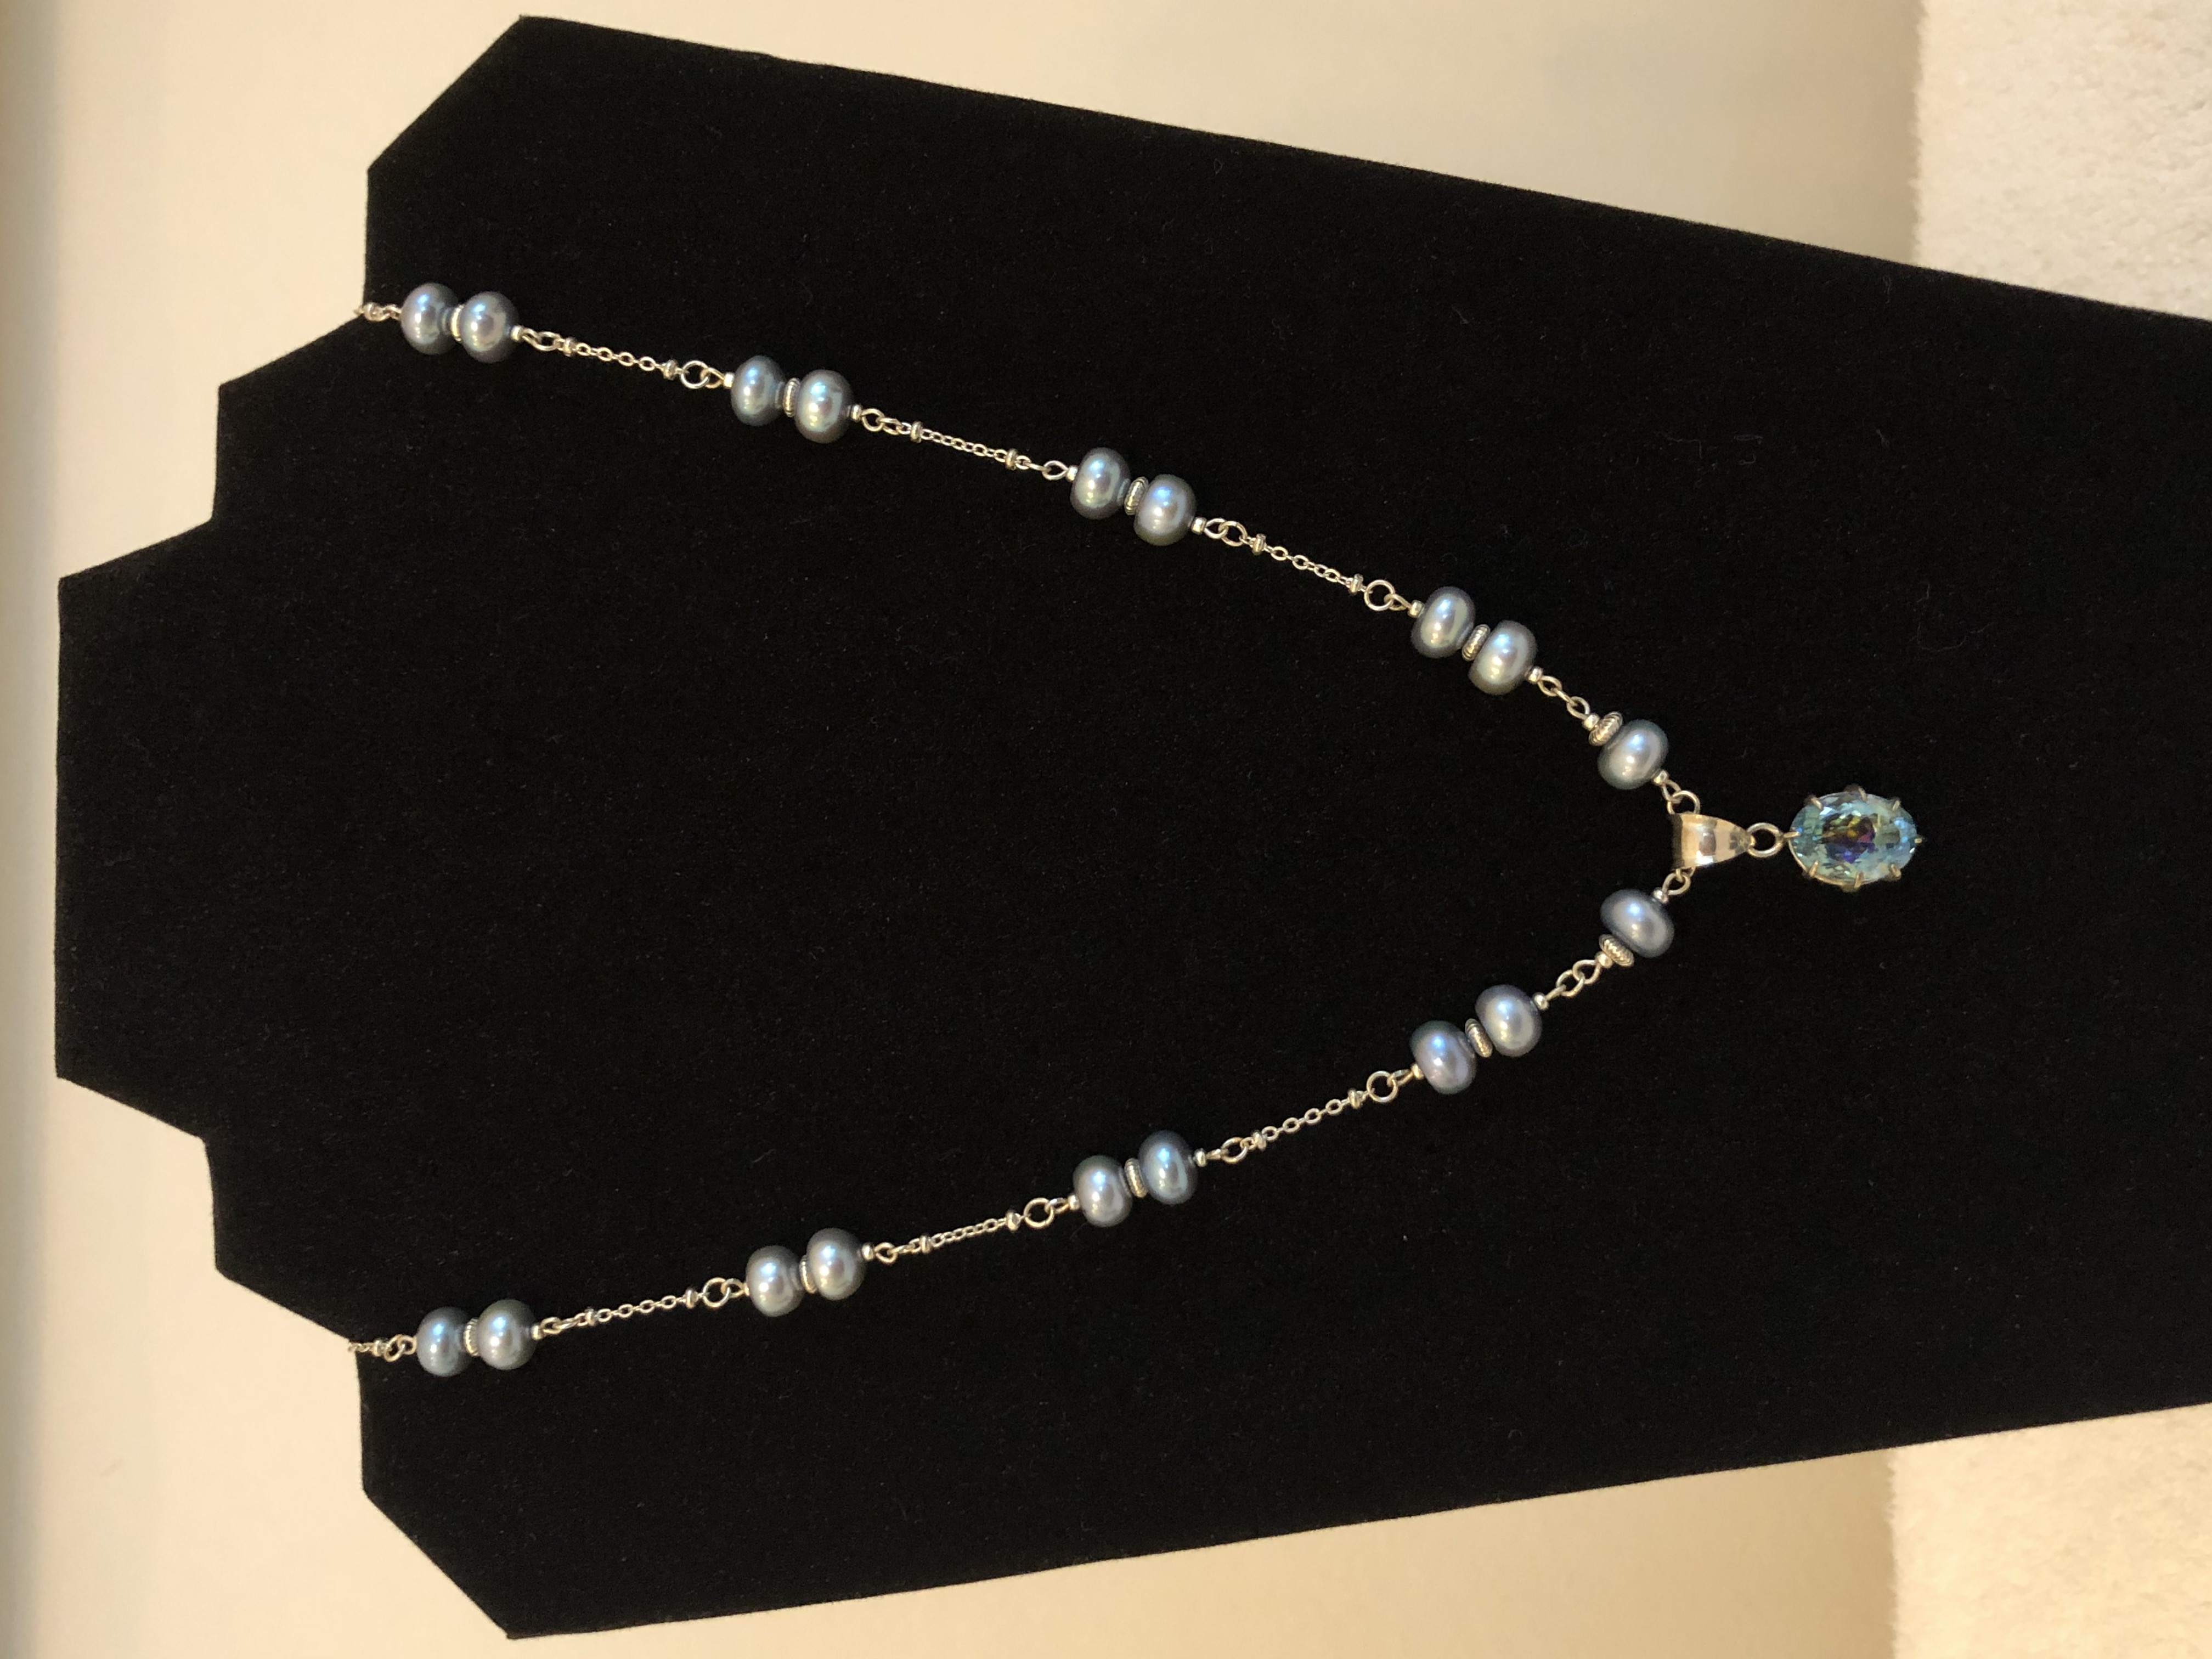 Sterling Silver Necklace, w/Freshwater 8.5mm Charcoal Pearls & Mystic Topaz Pendant